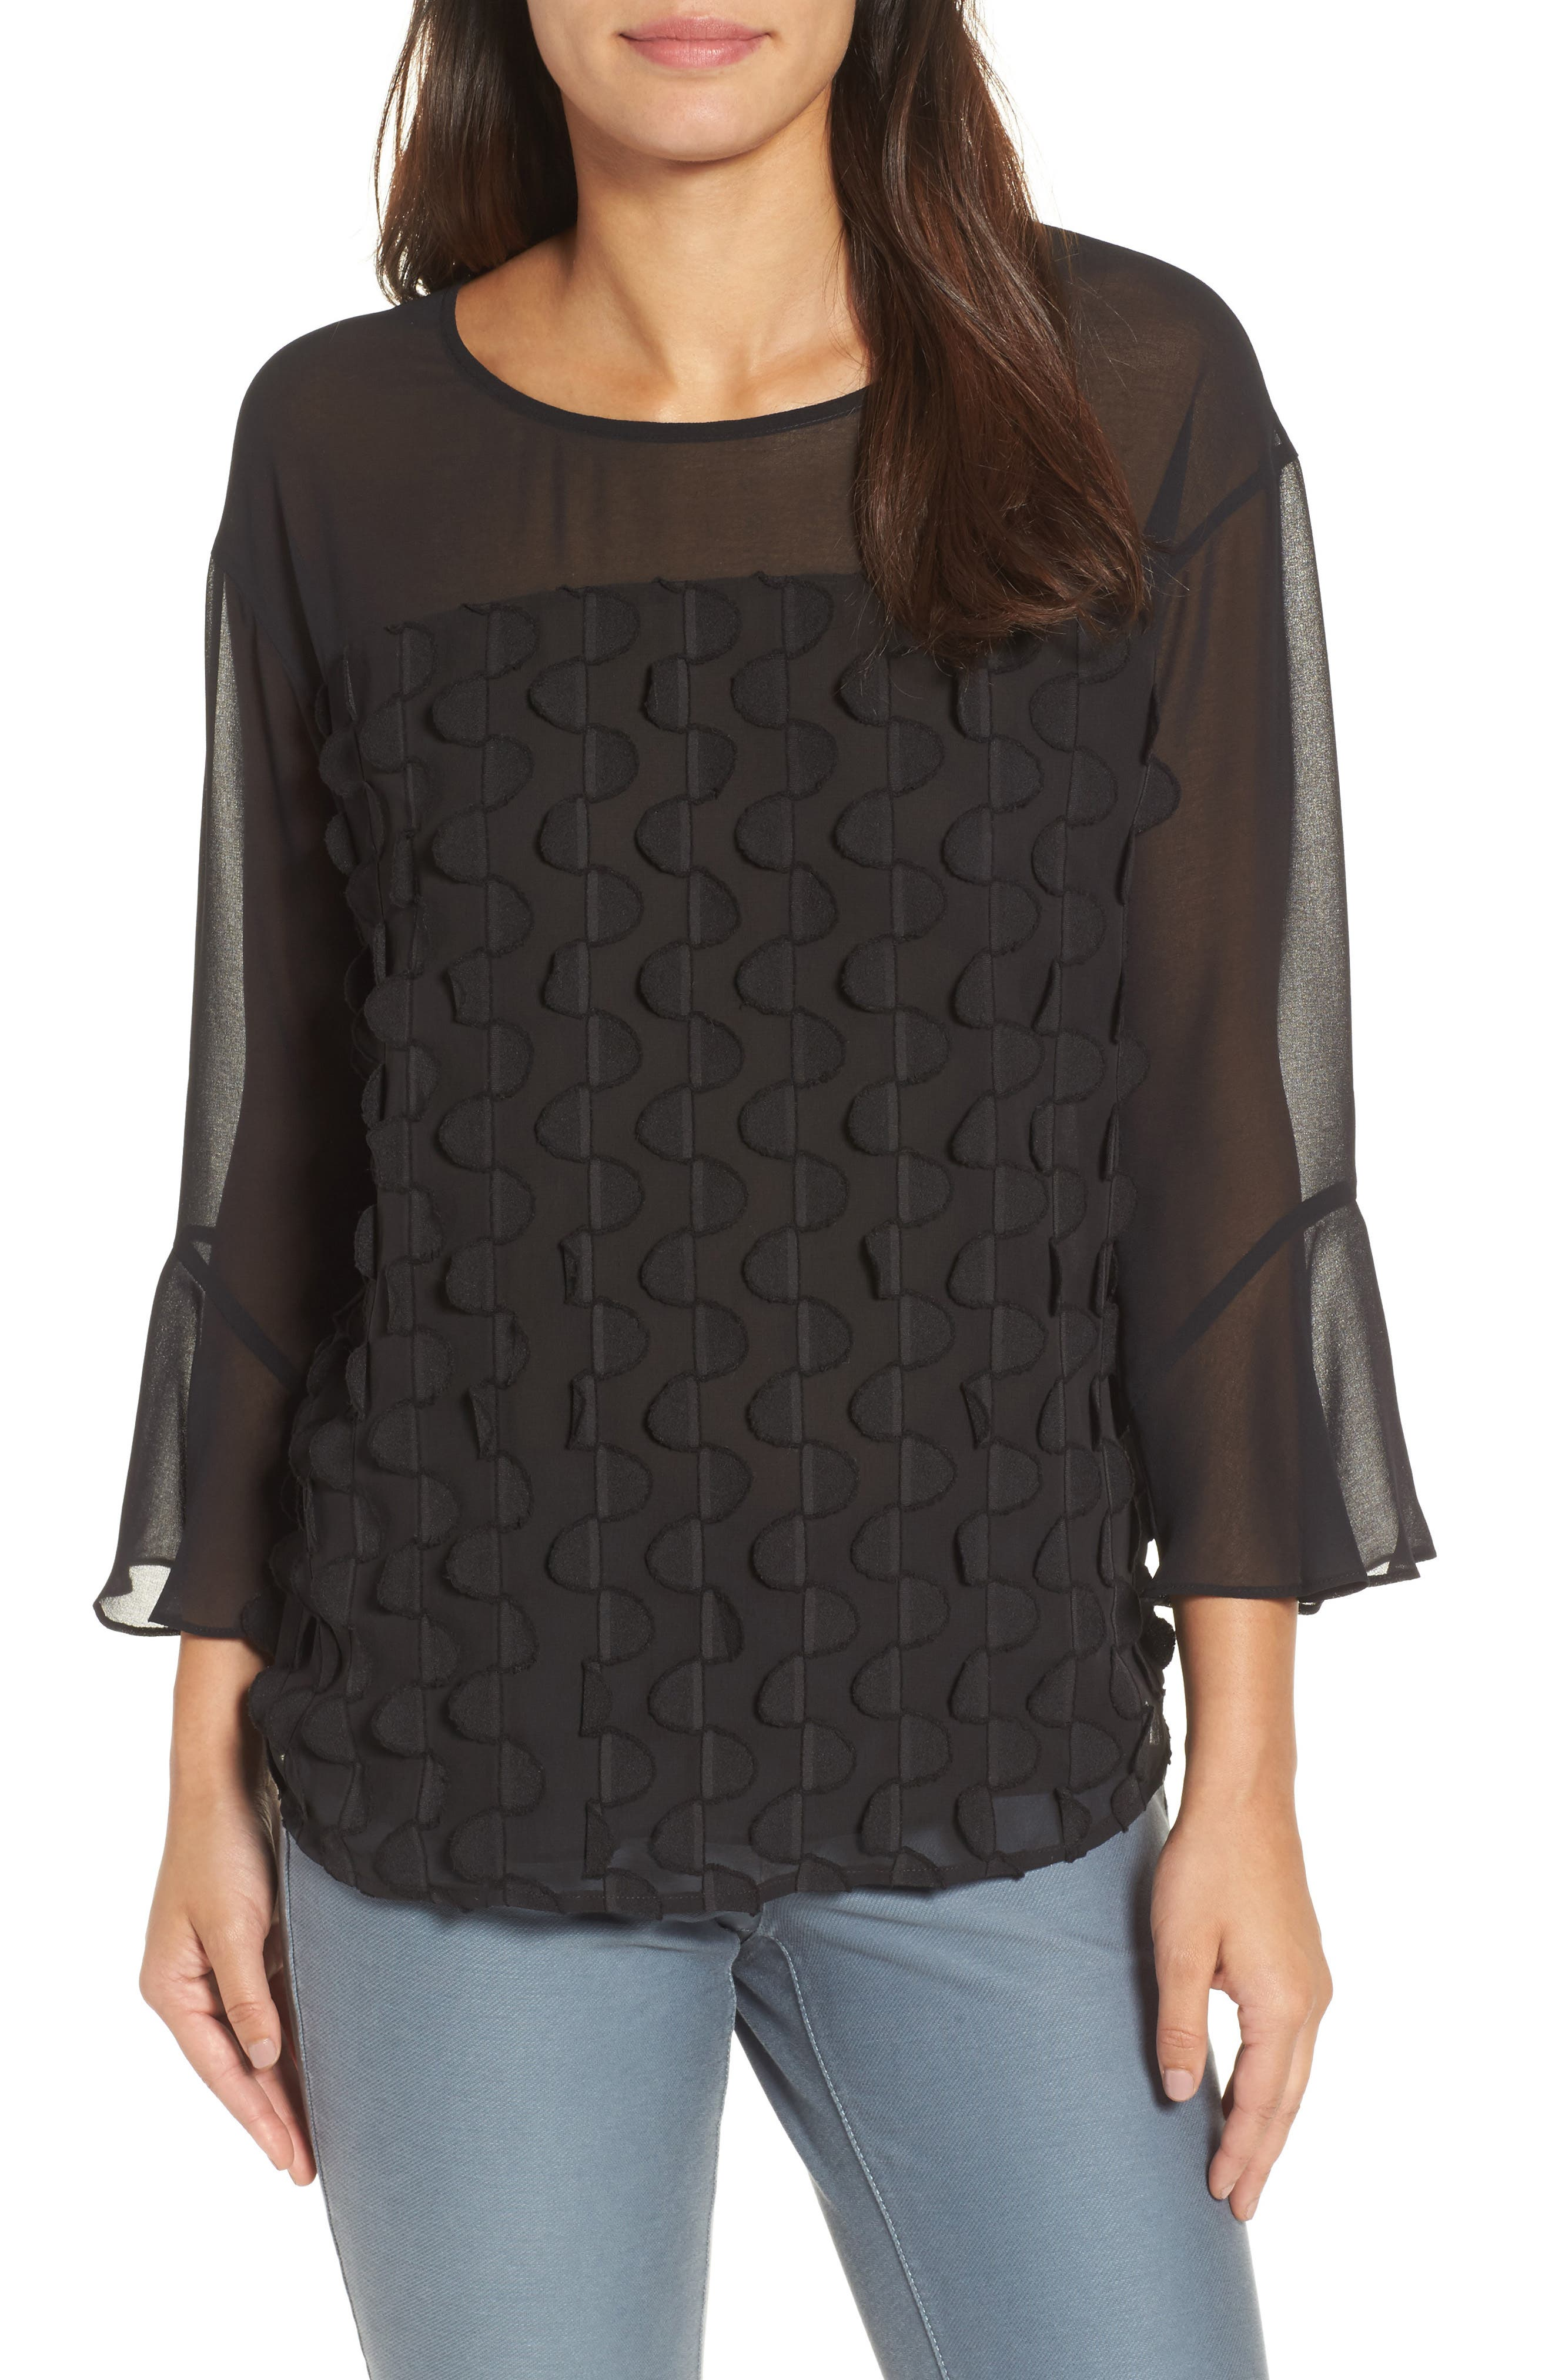 Nic + Zoe Showtime Bell Sleeve Top